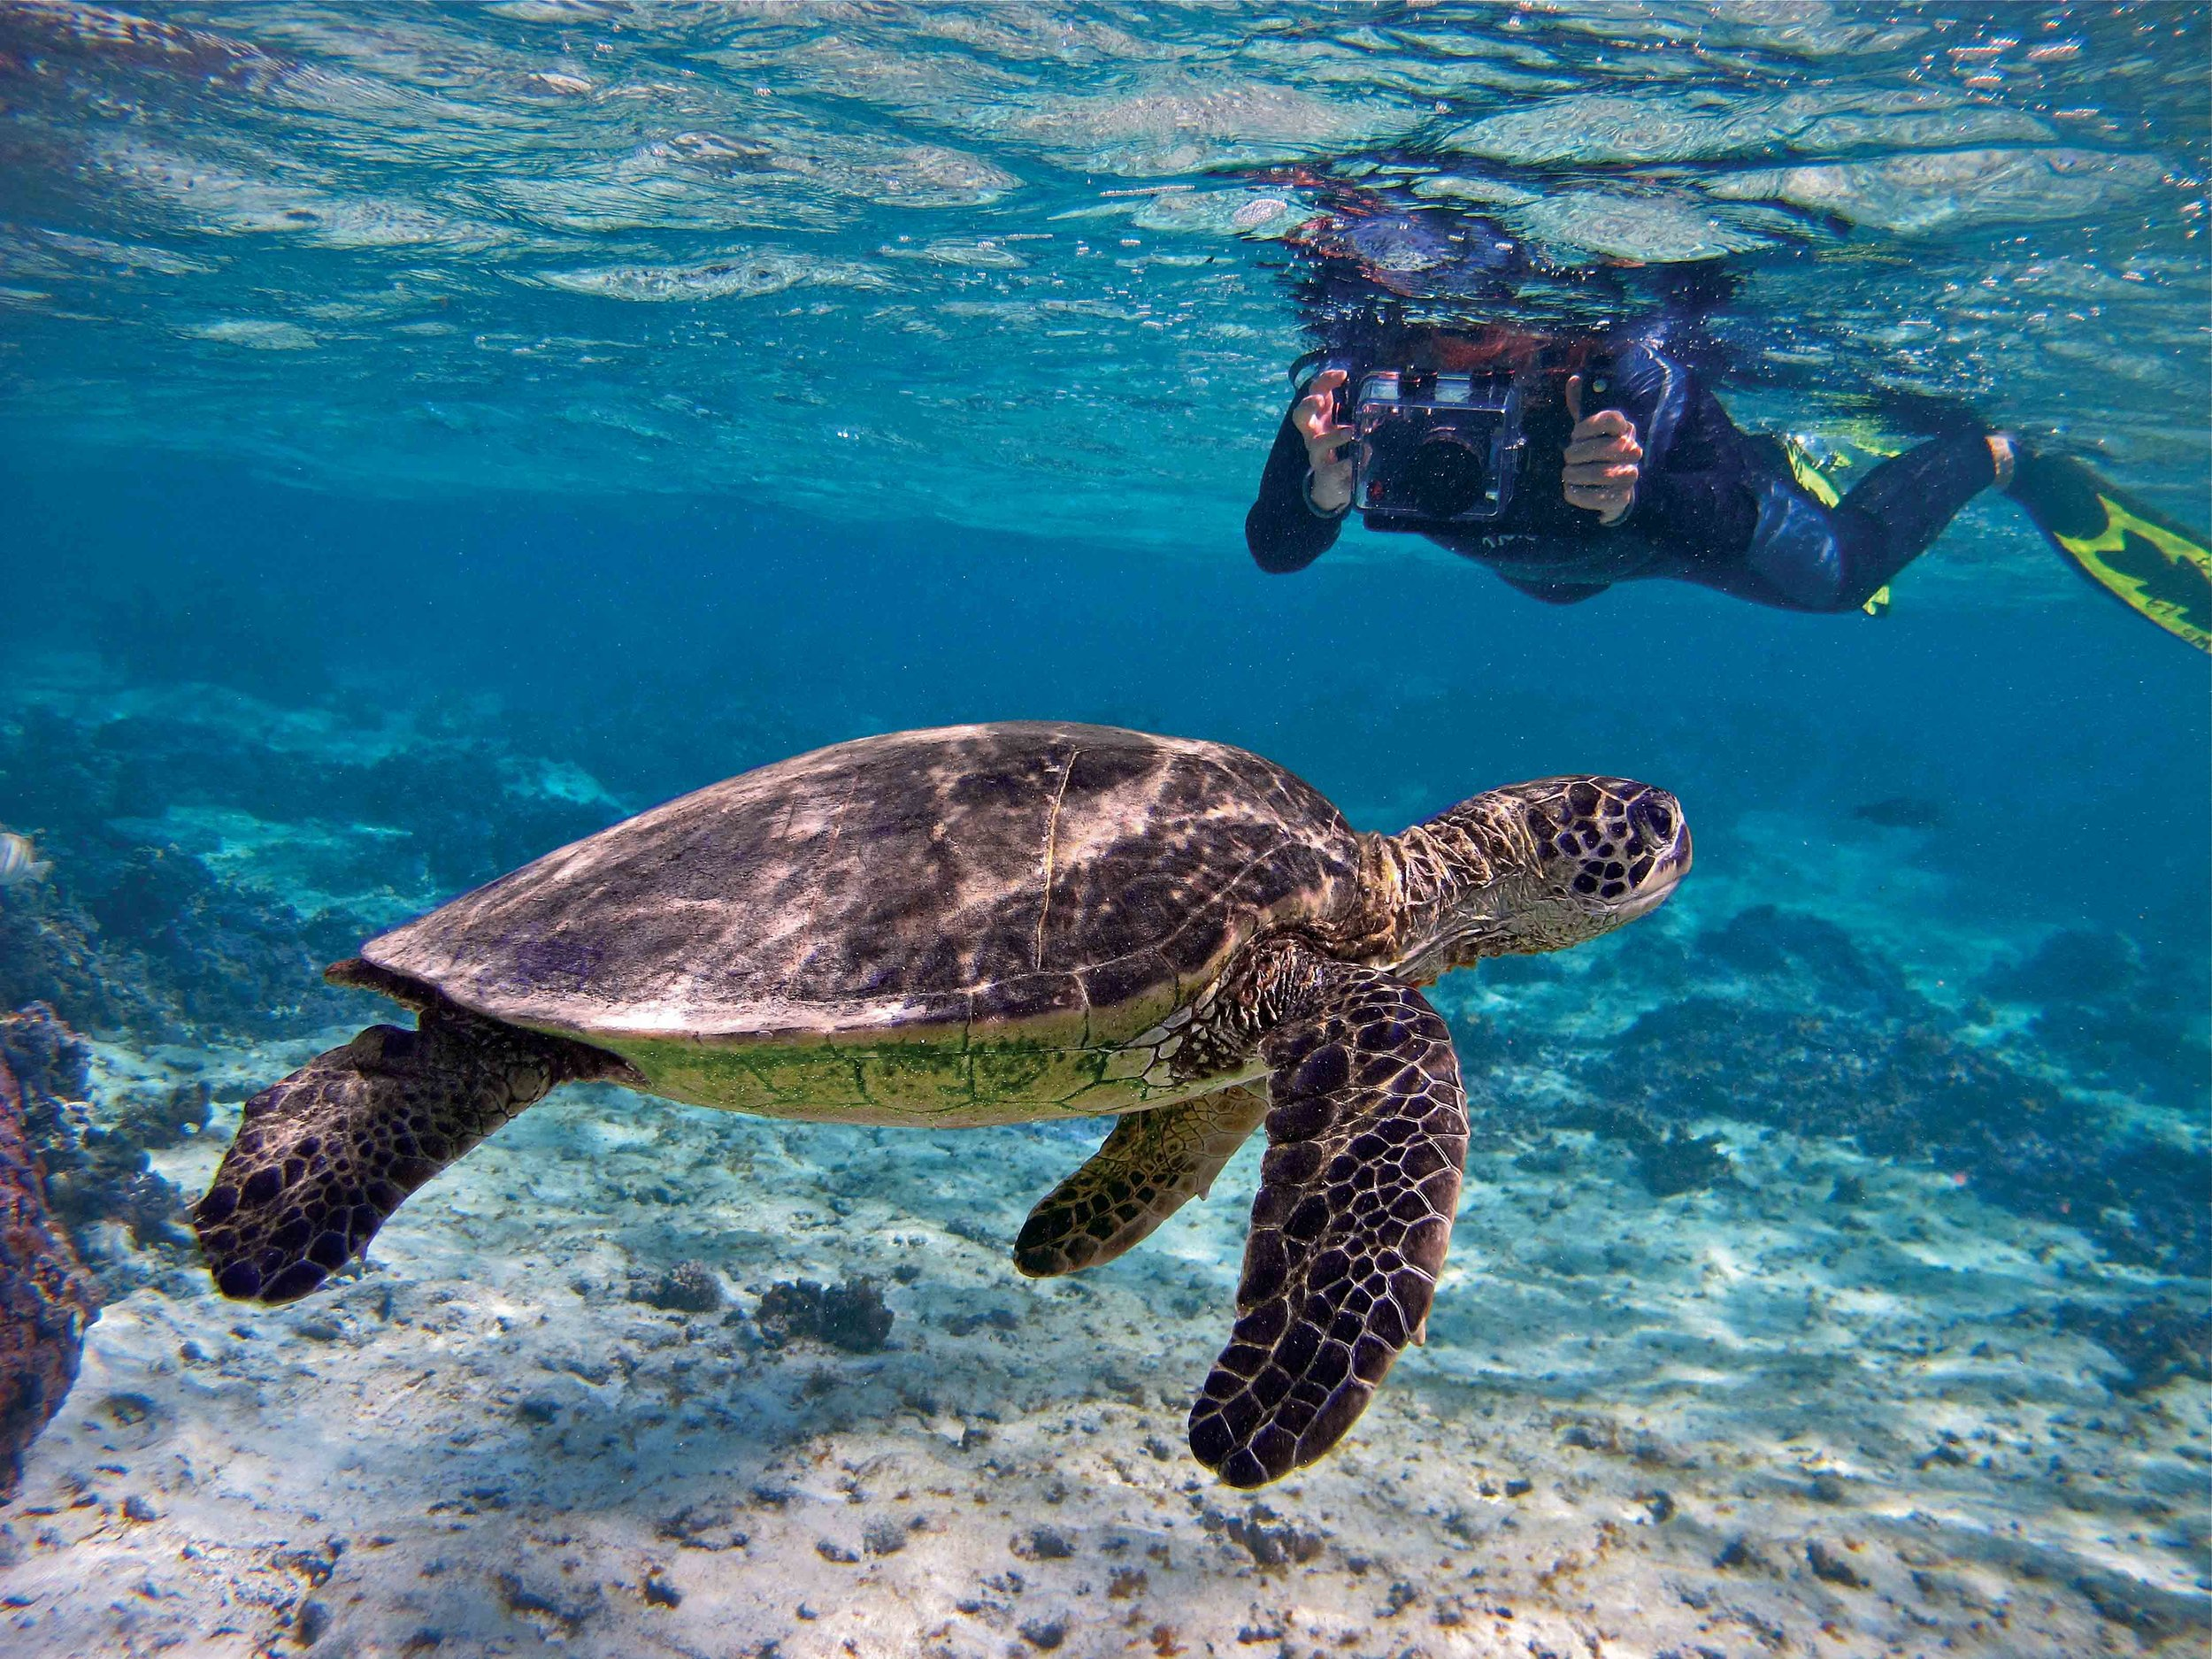 A snorkeler photographs a green turtle. Researchers are exploring ways to combine photography and computer software to identify individual turtles. © WAYNE SENTMAN